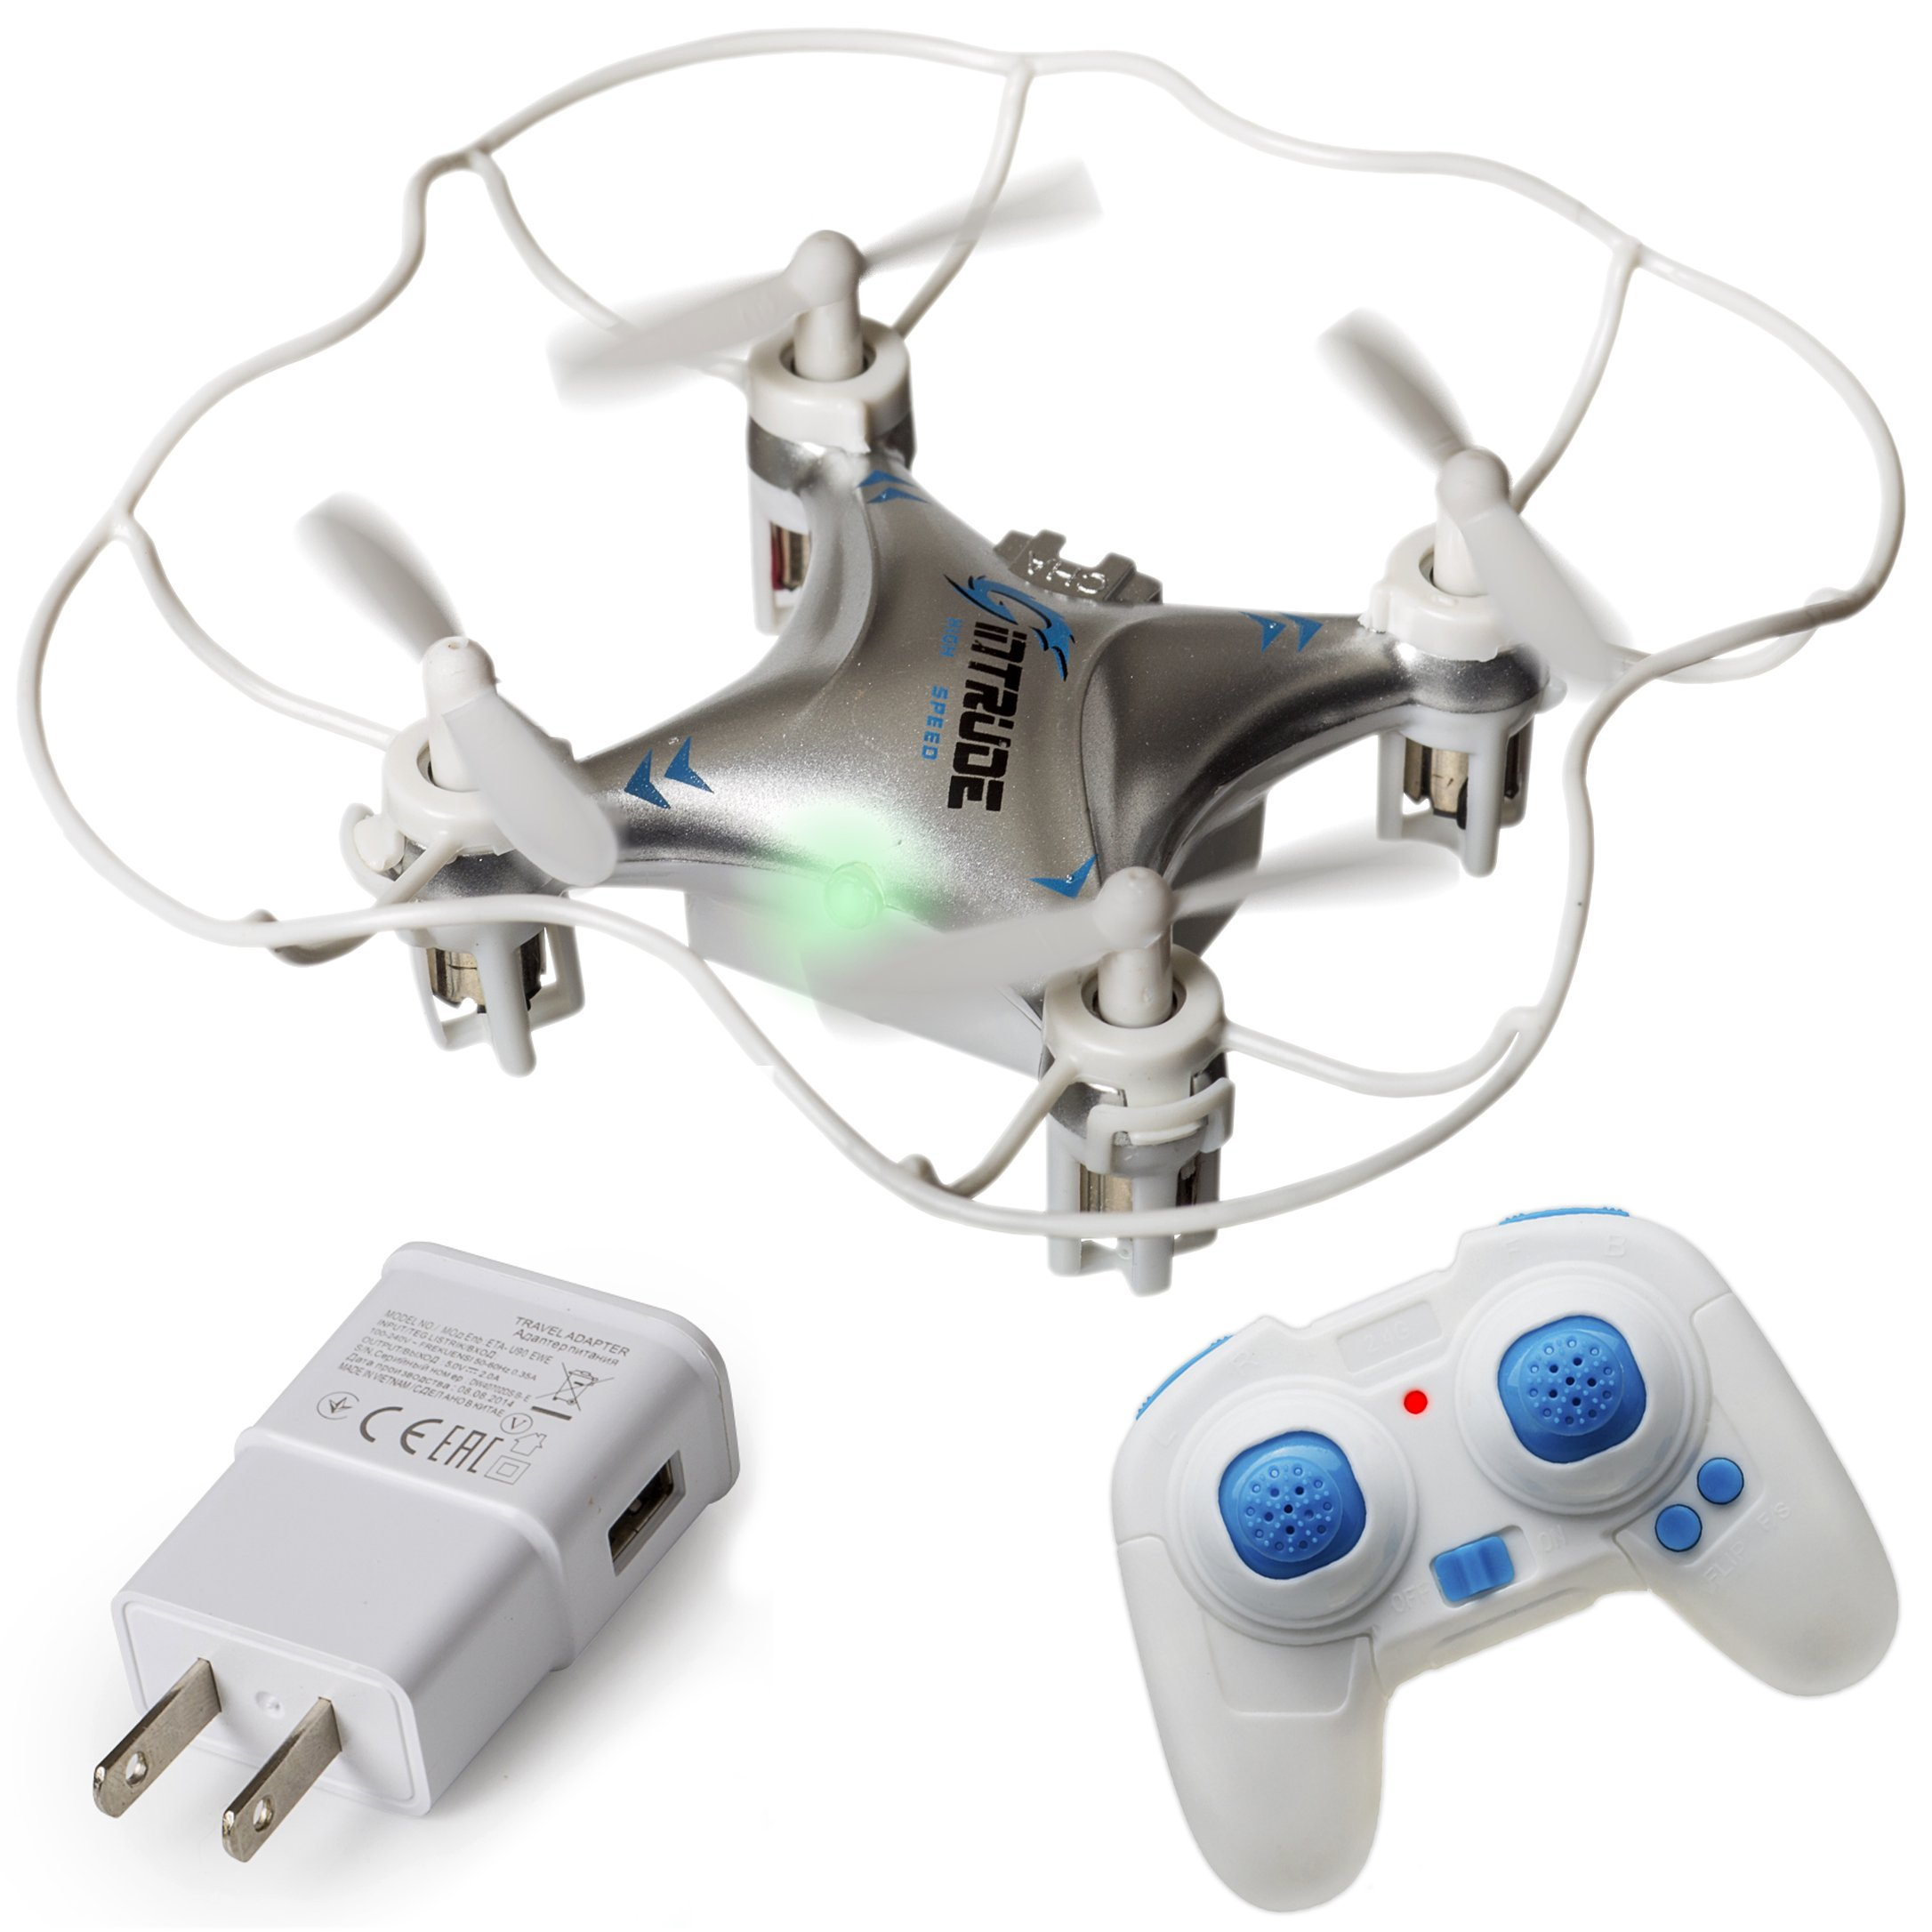 Mini Quadcopter Drone + FREE Wall Charger - Beginner Flying RC Helicopter Drone for Kids and Adults - Small, Rugged, Easy-to-Use 6-Axis Gyro, Advanced Stunt Controller, LED Light System by Duddy